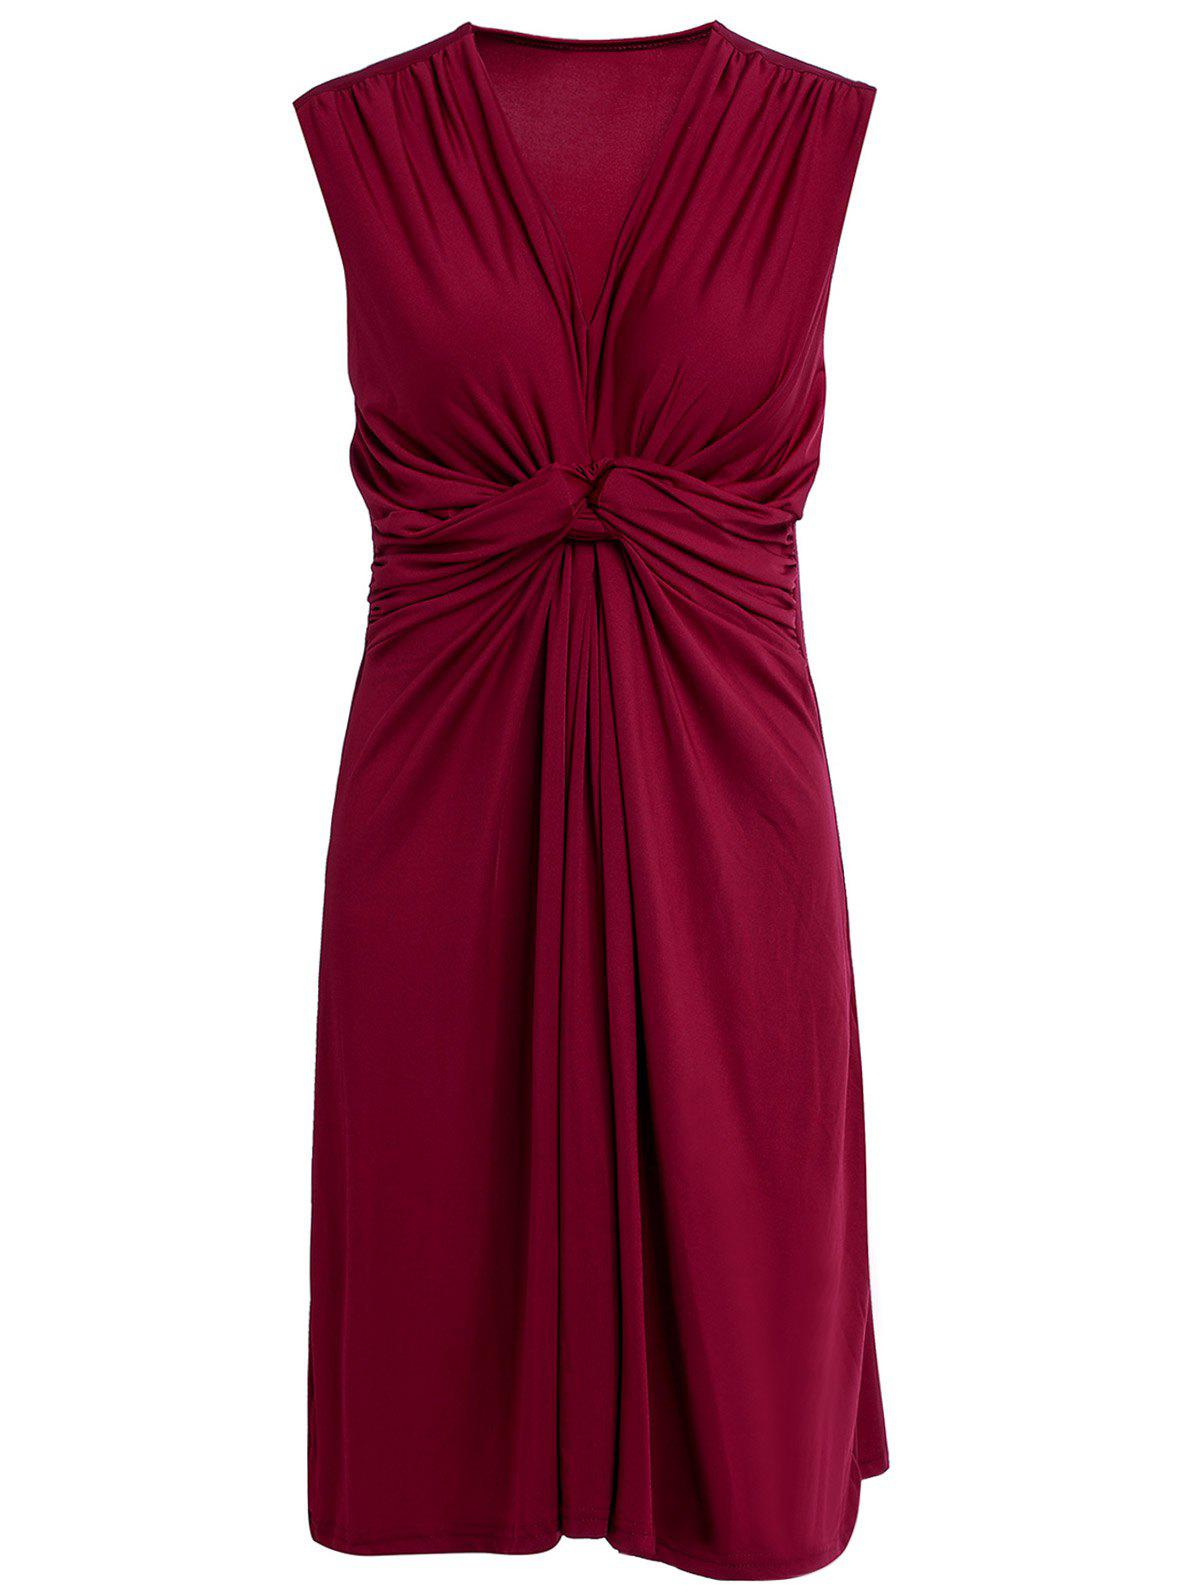 Vogue V-Neck Pleated Pure Color Dress For Women - WINE RED L